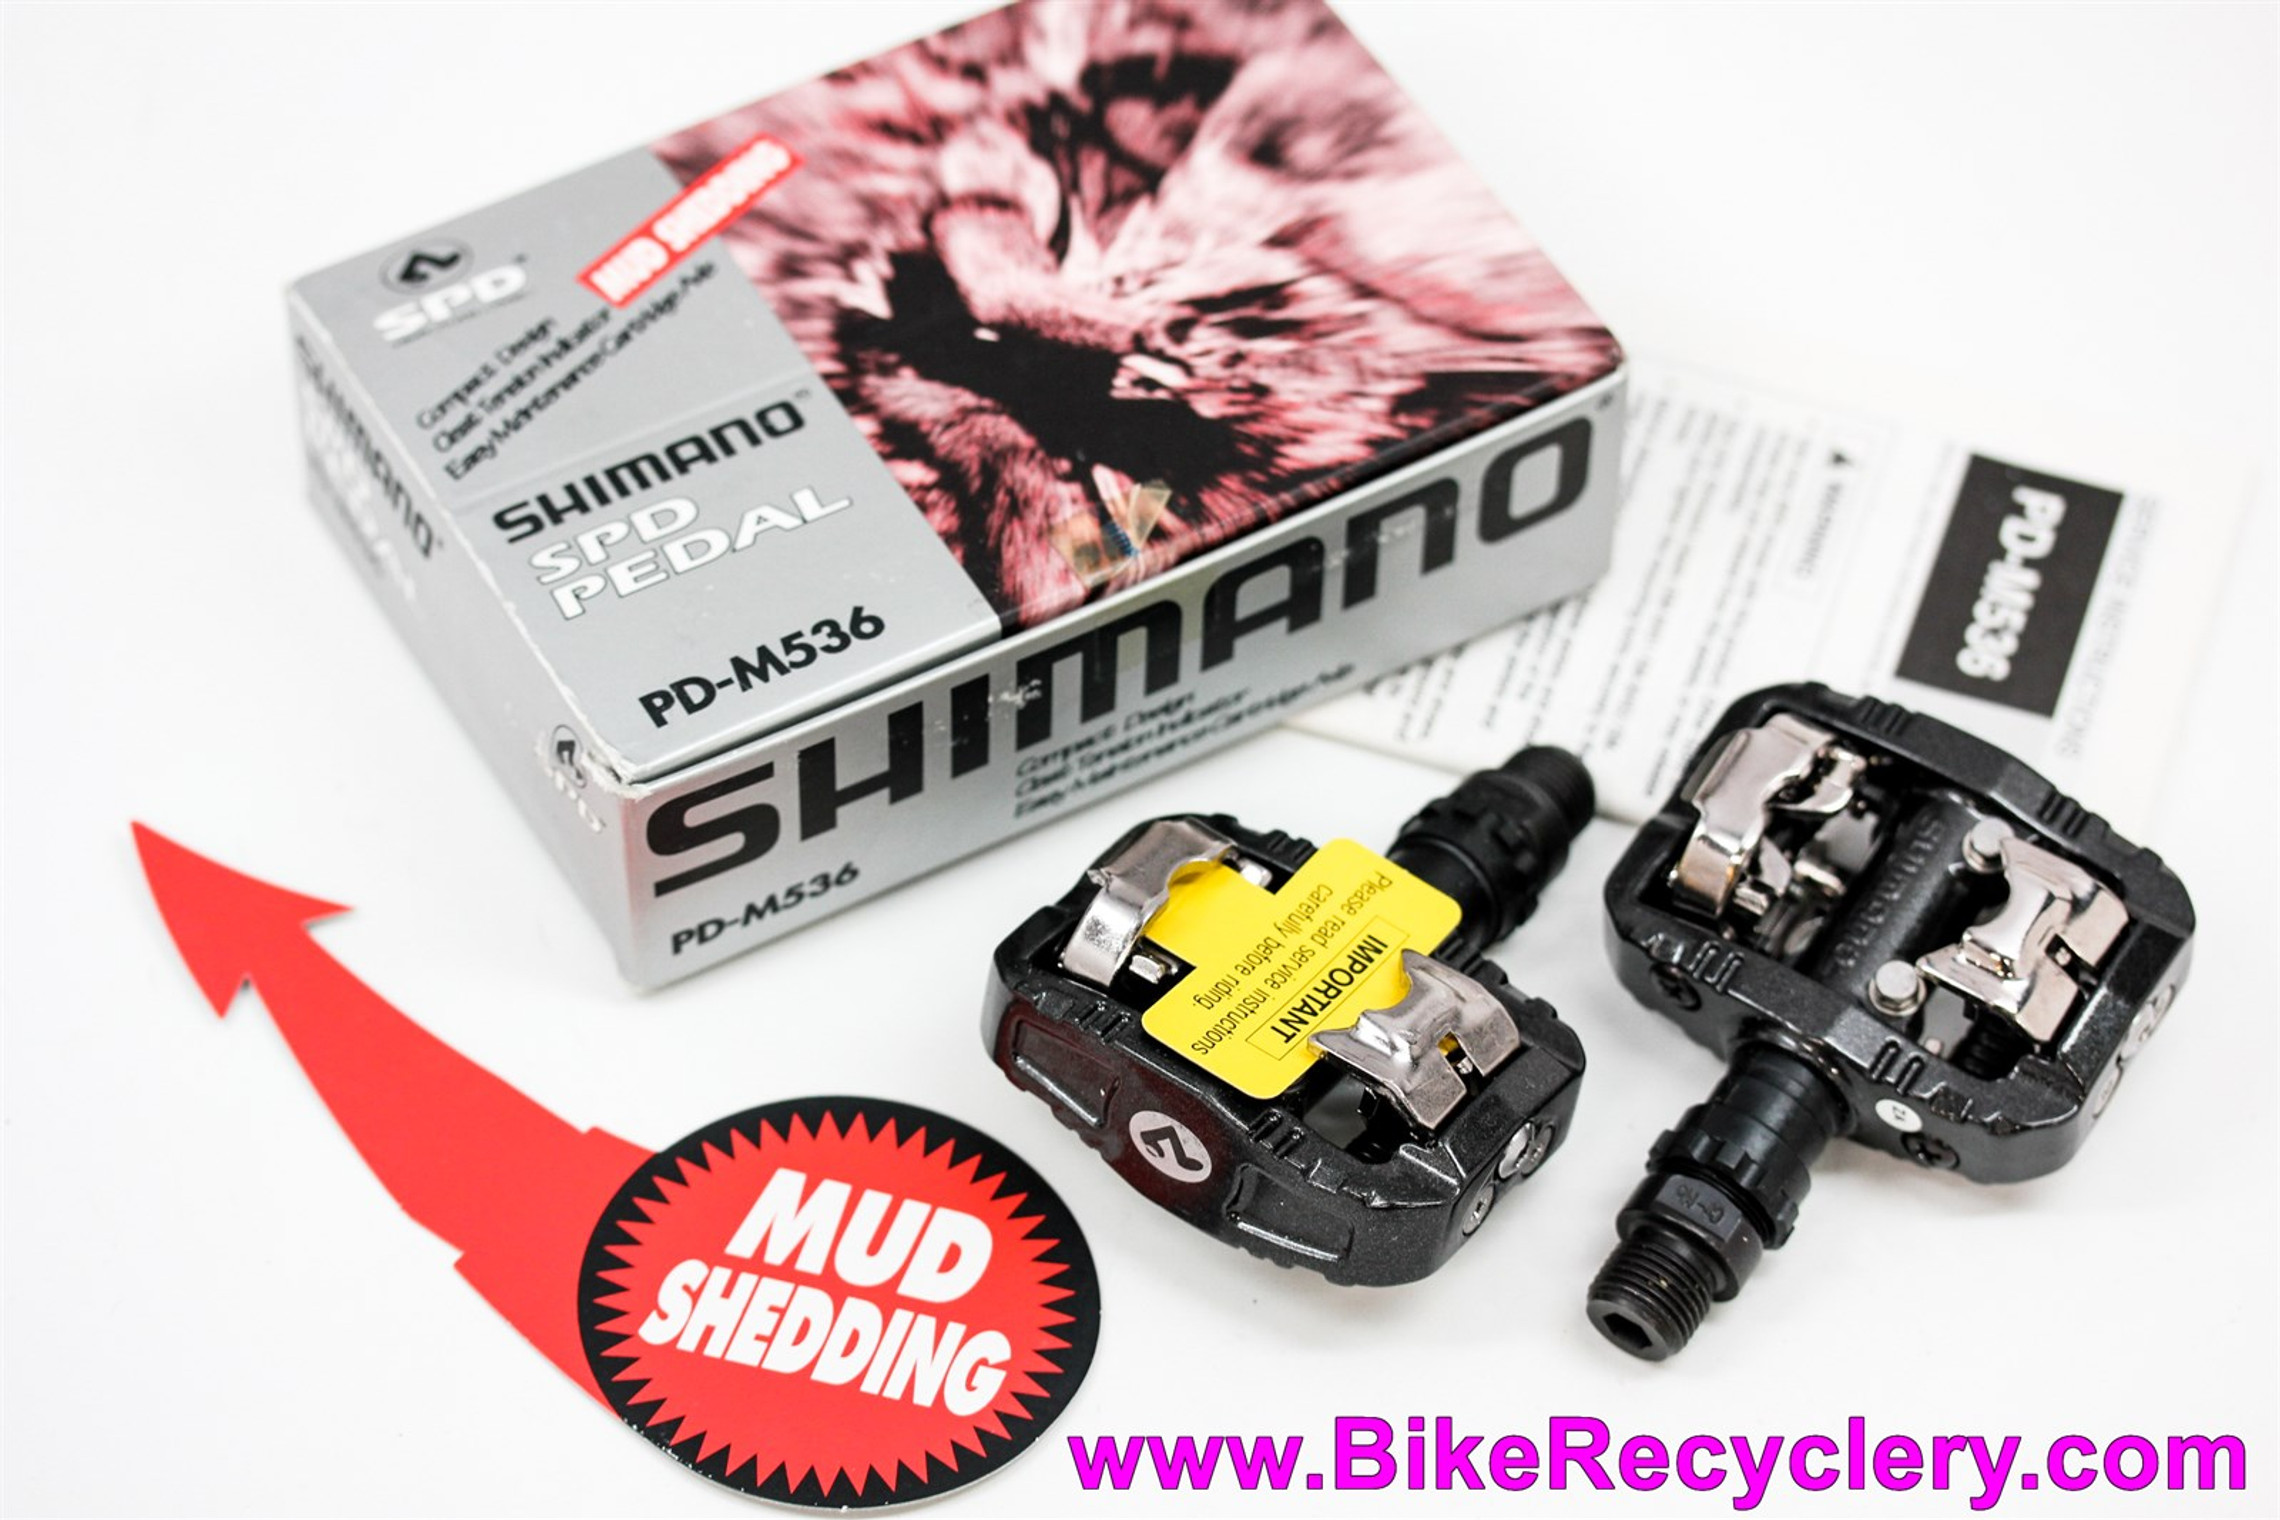 NIB/NOS Shimano Deore DX PD-M536 Mountain Bike SPD Pedals: Vintage 1990's - Black / Graphite